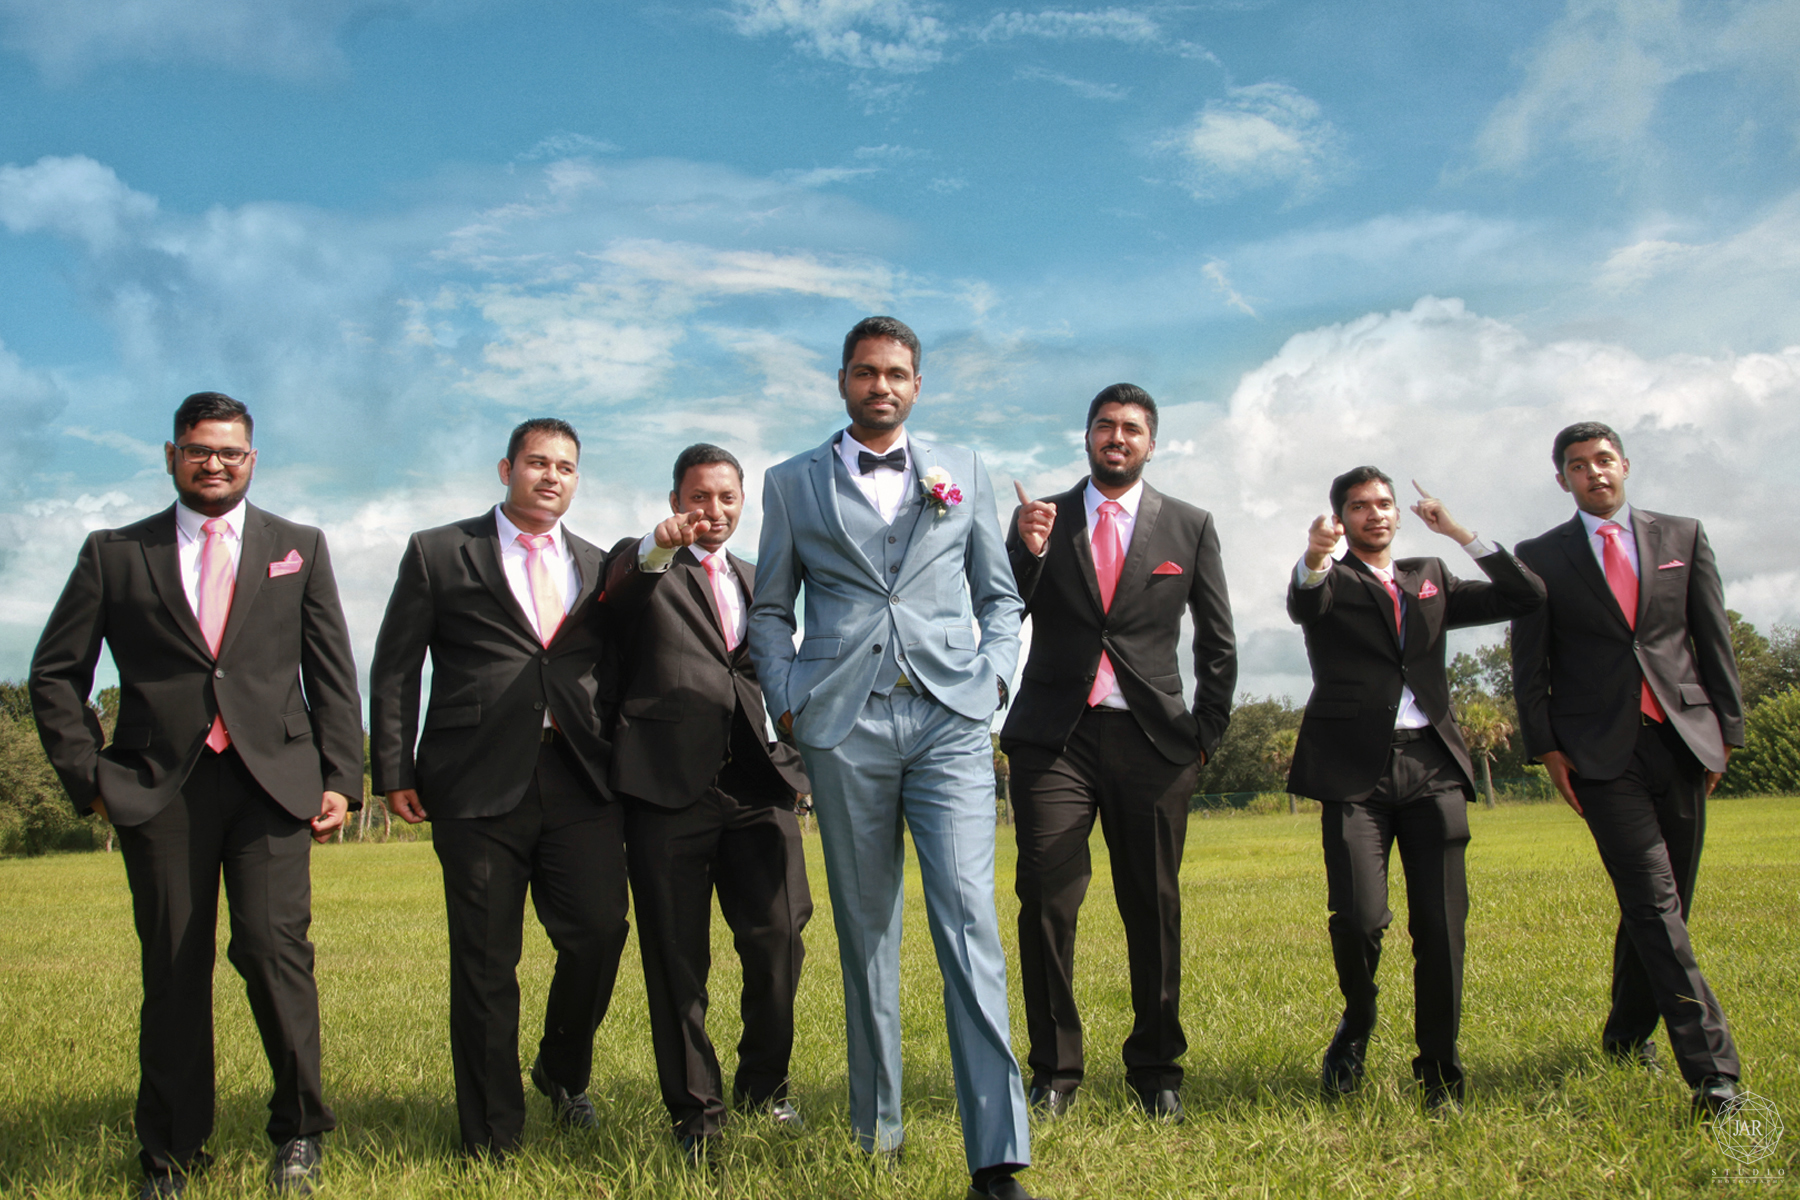 23-cool-groom-having-fun-groomsmen-outdoor-wedding-orlando-jarstudio.jpg